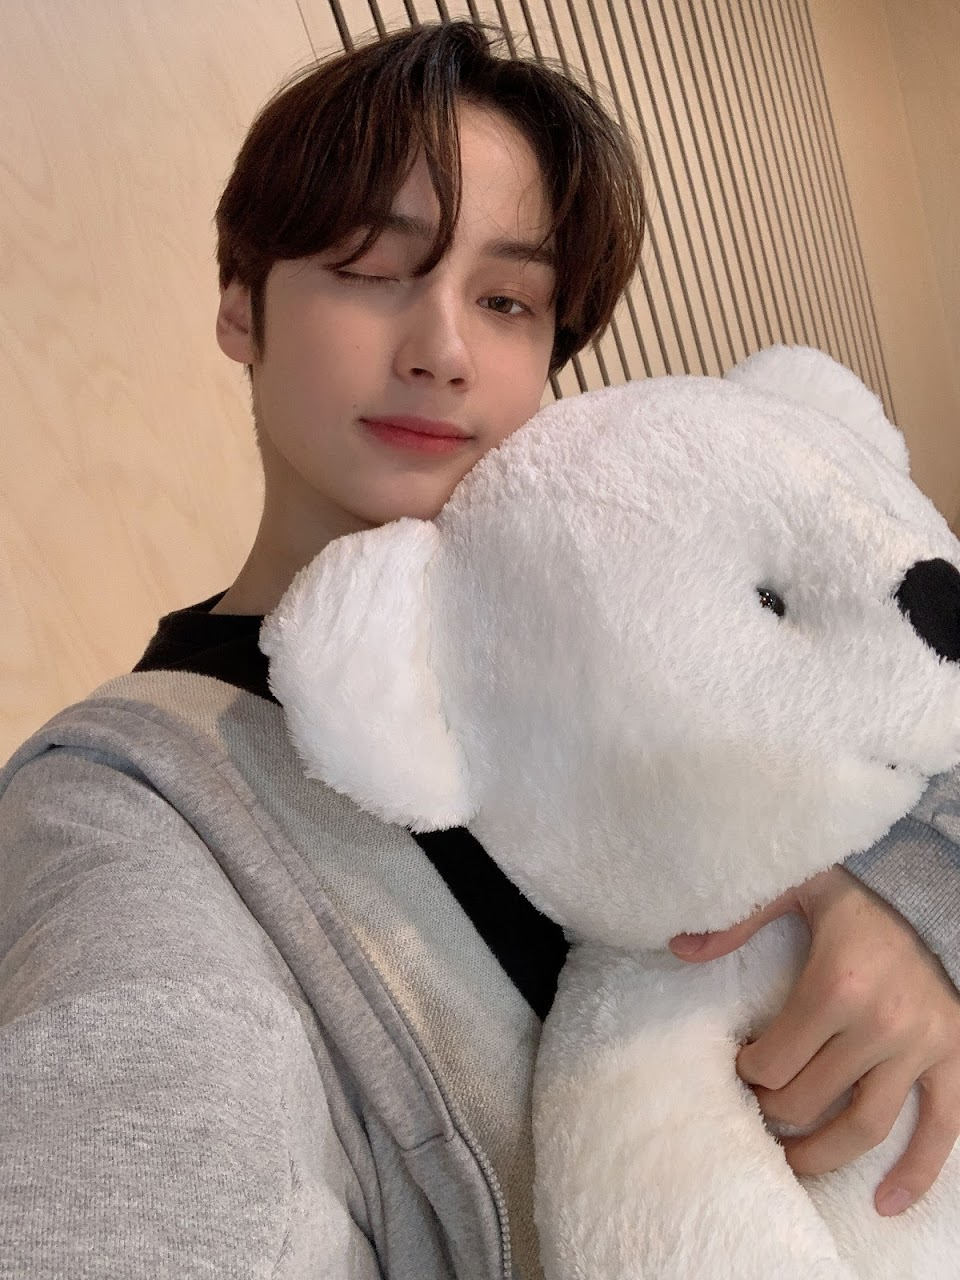 txt hueningkai plush stuffed animal weverse